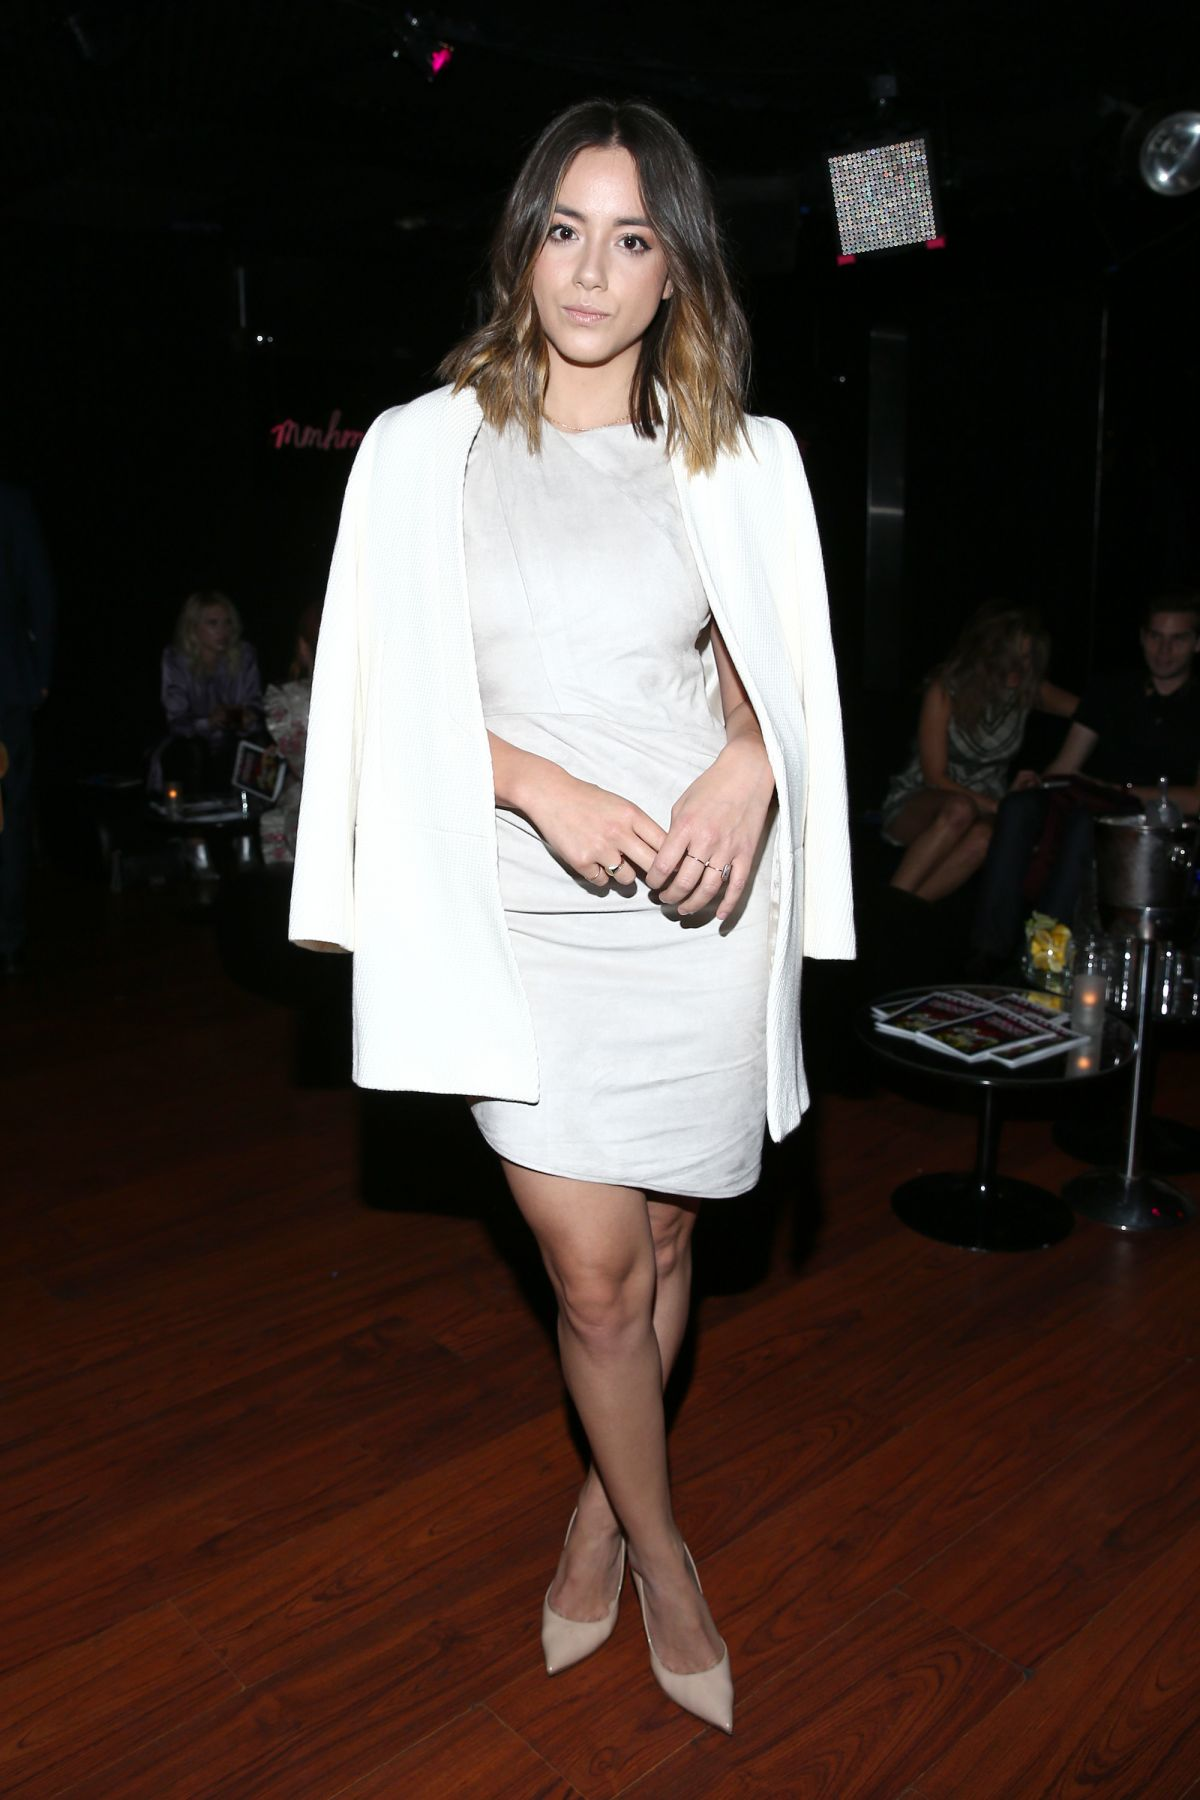 CHLOE BENNET at Wolk Morais Collection 3 Fashion Show in Los Angeles 05/24/2016